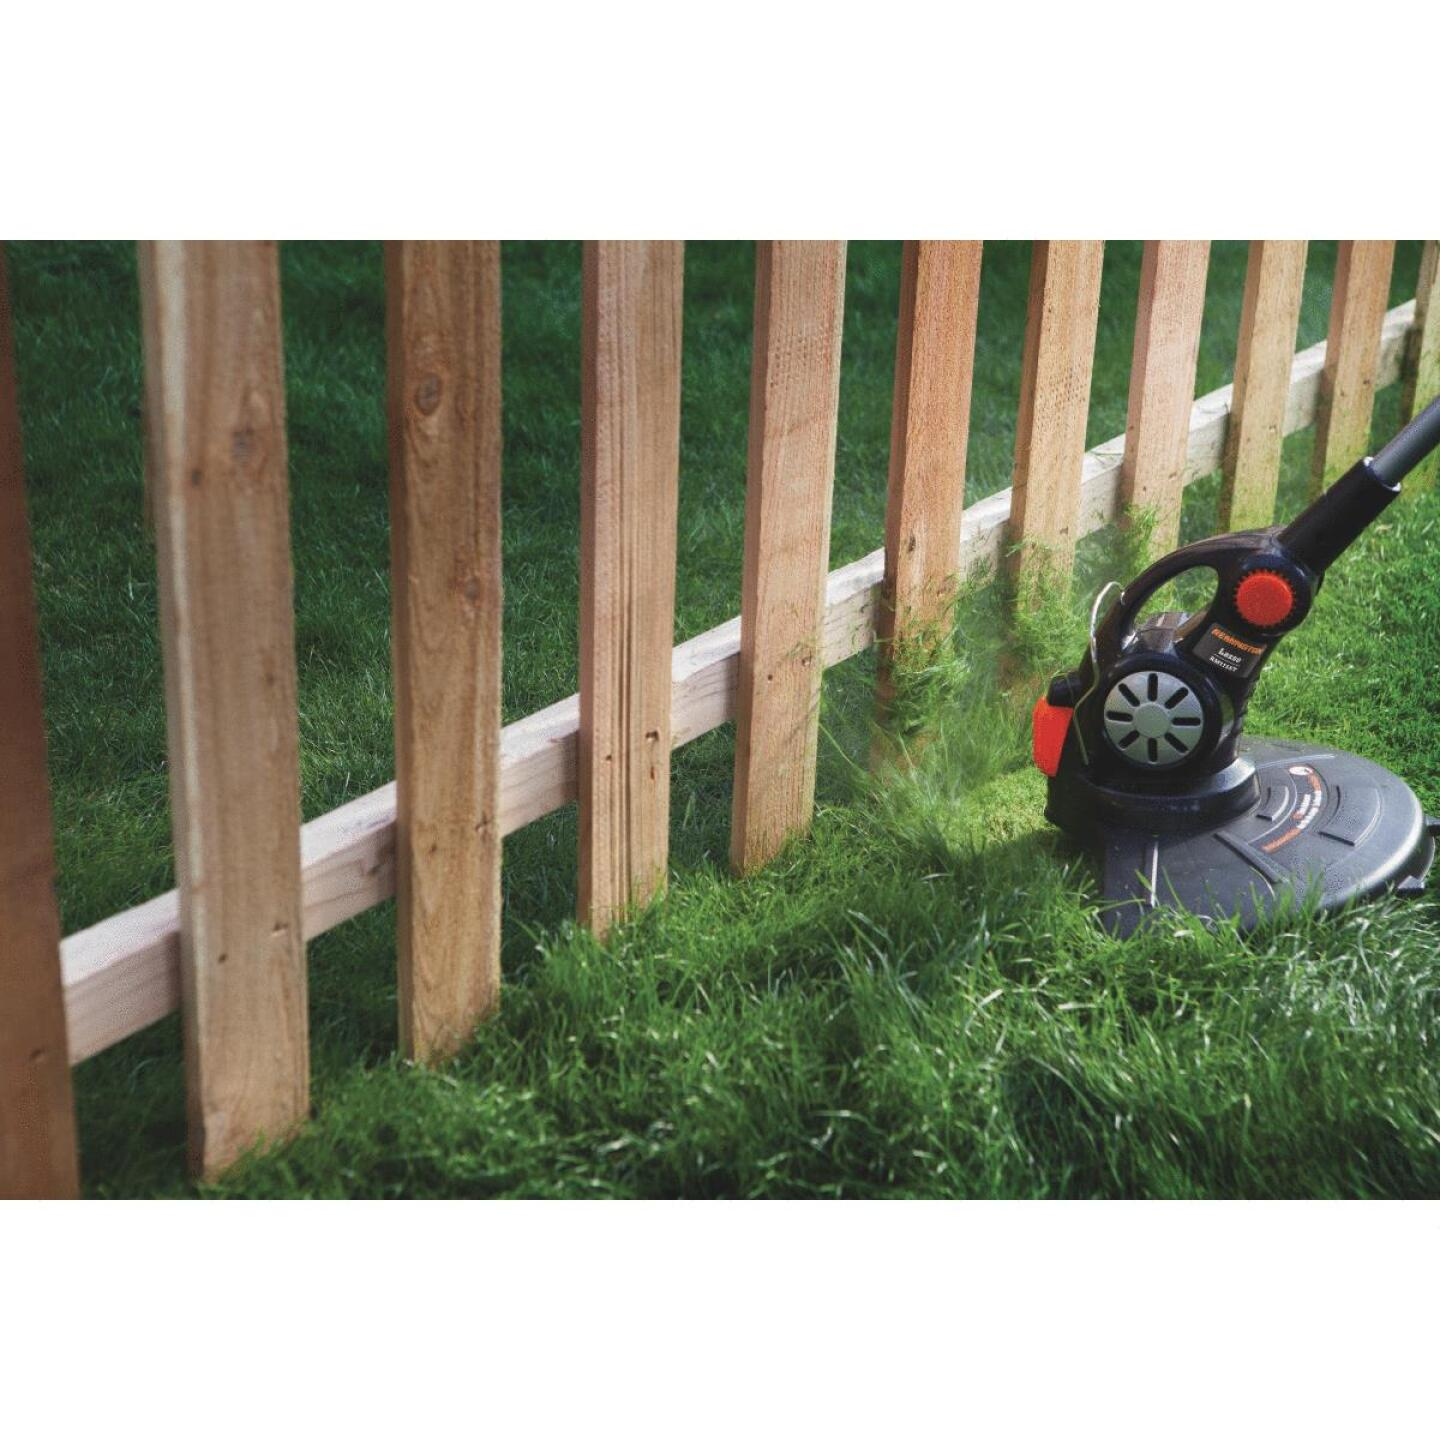 Remington RM115ST 14 In. 5.5-Amp Straight Shaft Corded Electric String Trimmer/Edger Image 5